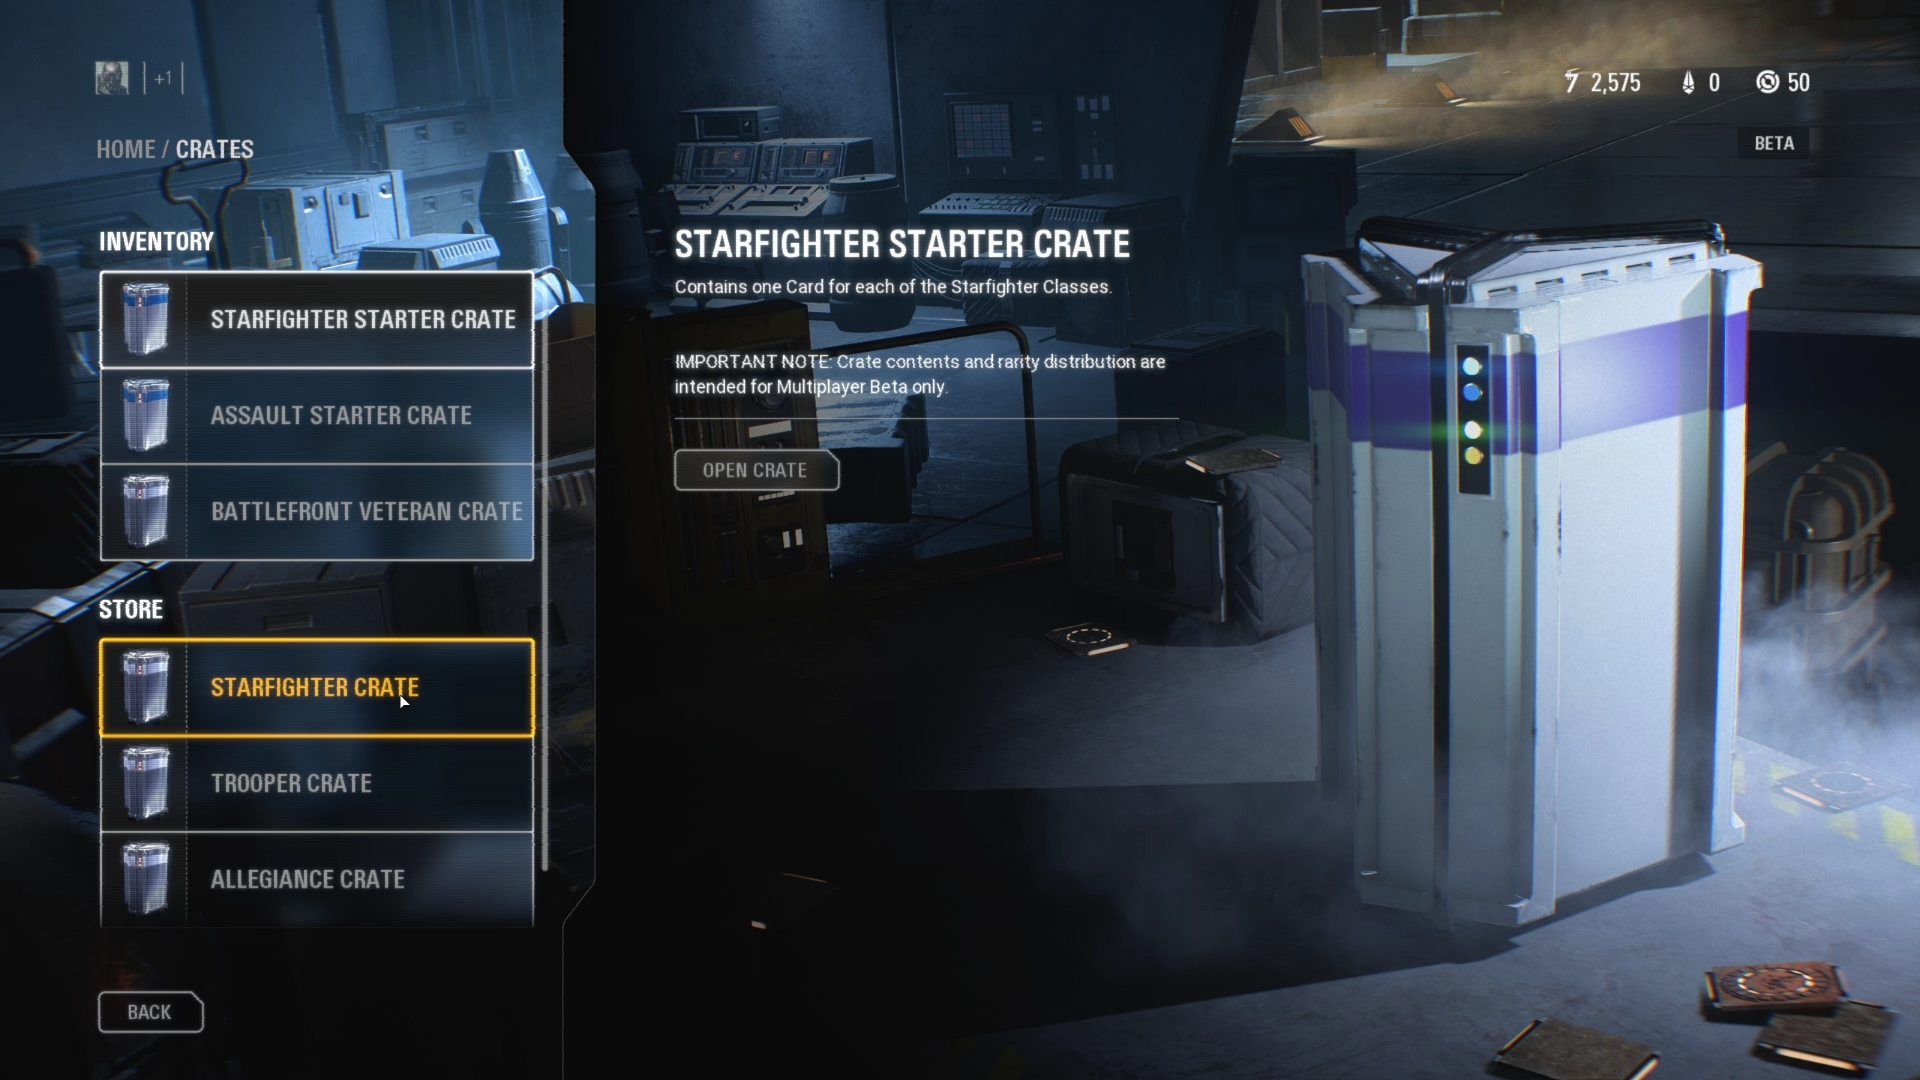 DICE Comments on Battlefront II Loot Crates After Beta Feedback